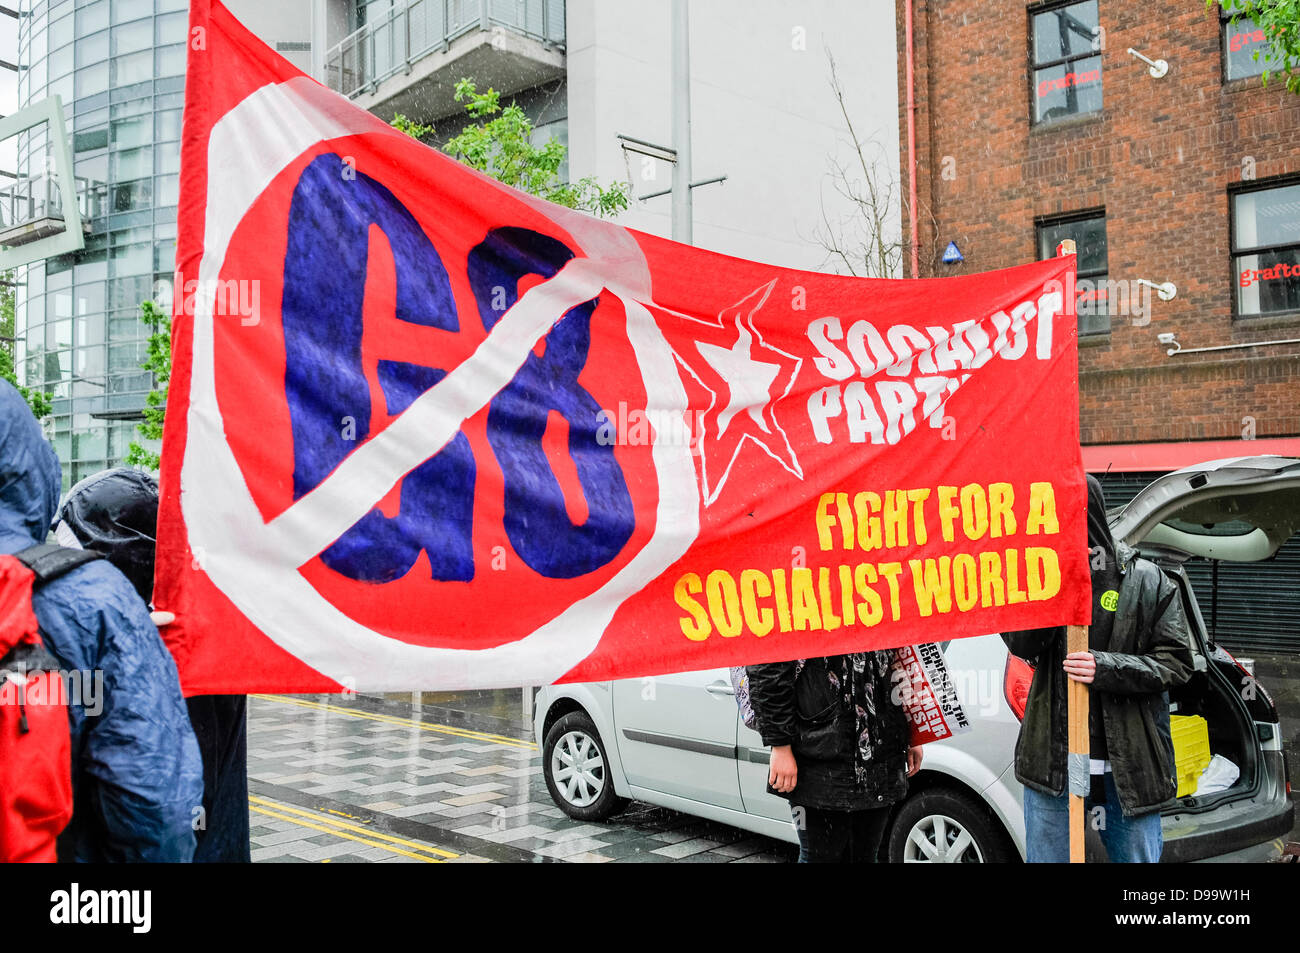 Belfast, Northern Ireland. 15th June 2013. Socialist Party banner at an anti-G8 protest organised by the Irish Congress - Stock Image